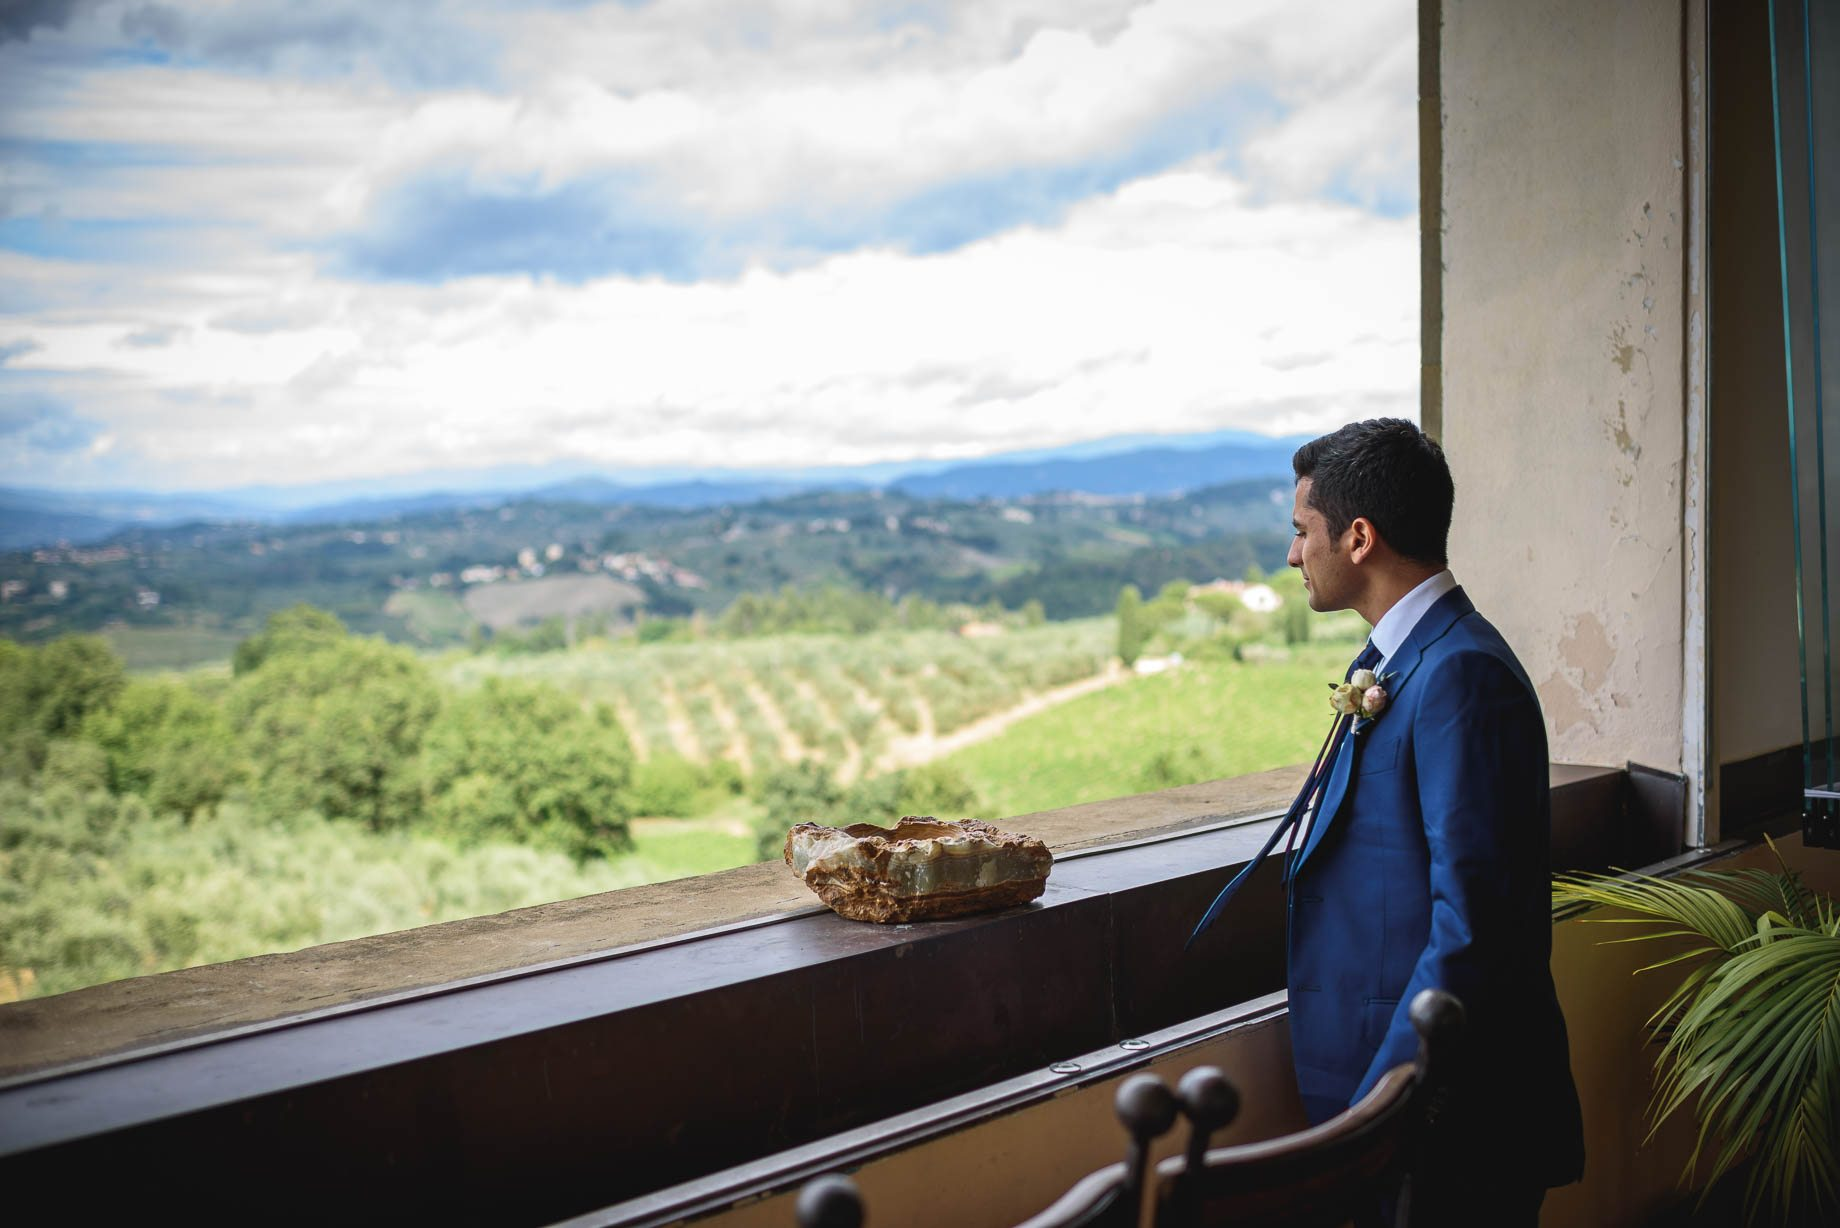 Tuscany wedding photography - Roisin and Moubin - Guy Collier Photography (55 of 251)